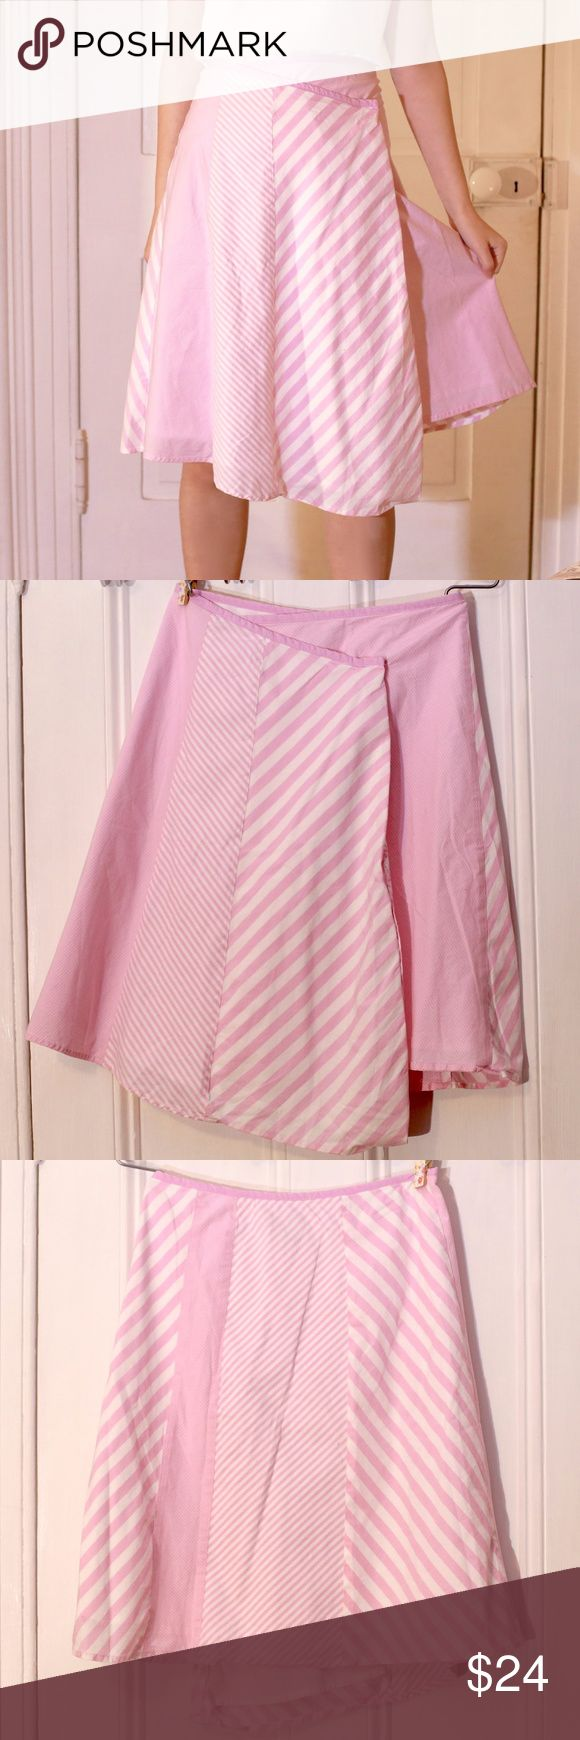 "Anthro Pink Candy Stripe Asymmetrical Wrap Skirt Adorable skirt from Elevenses at Anthropologie. Buttons in the front for an asymmetrical wrap look. Both button in tact and only flaw is a tiny hole near where it fastens (see last pic). In excellent condition otherwise, gently worn. Made up of a patchwork of baby pink and white stripes of various widths. 14.25"" across the waist at the top and 22.25"" in length (knee-length). 97% cotton 3% lycra. Anthropologie Skirts Midi"